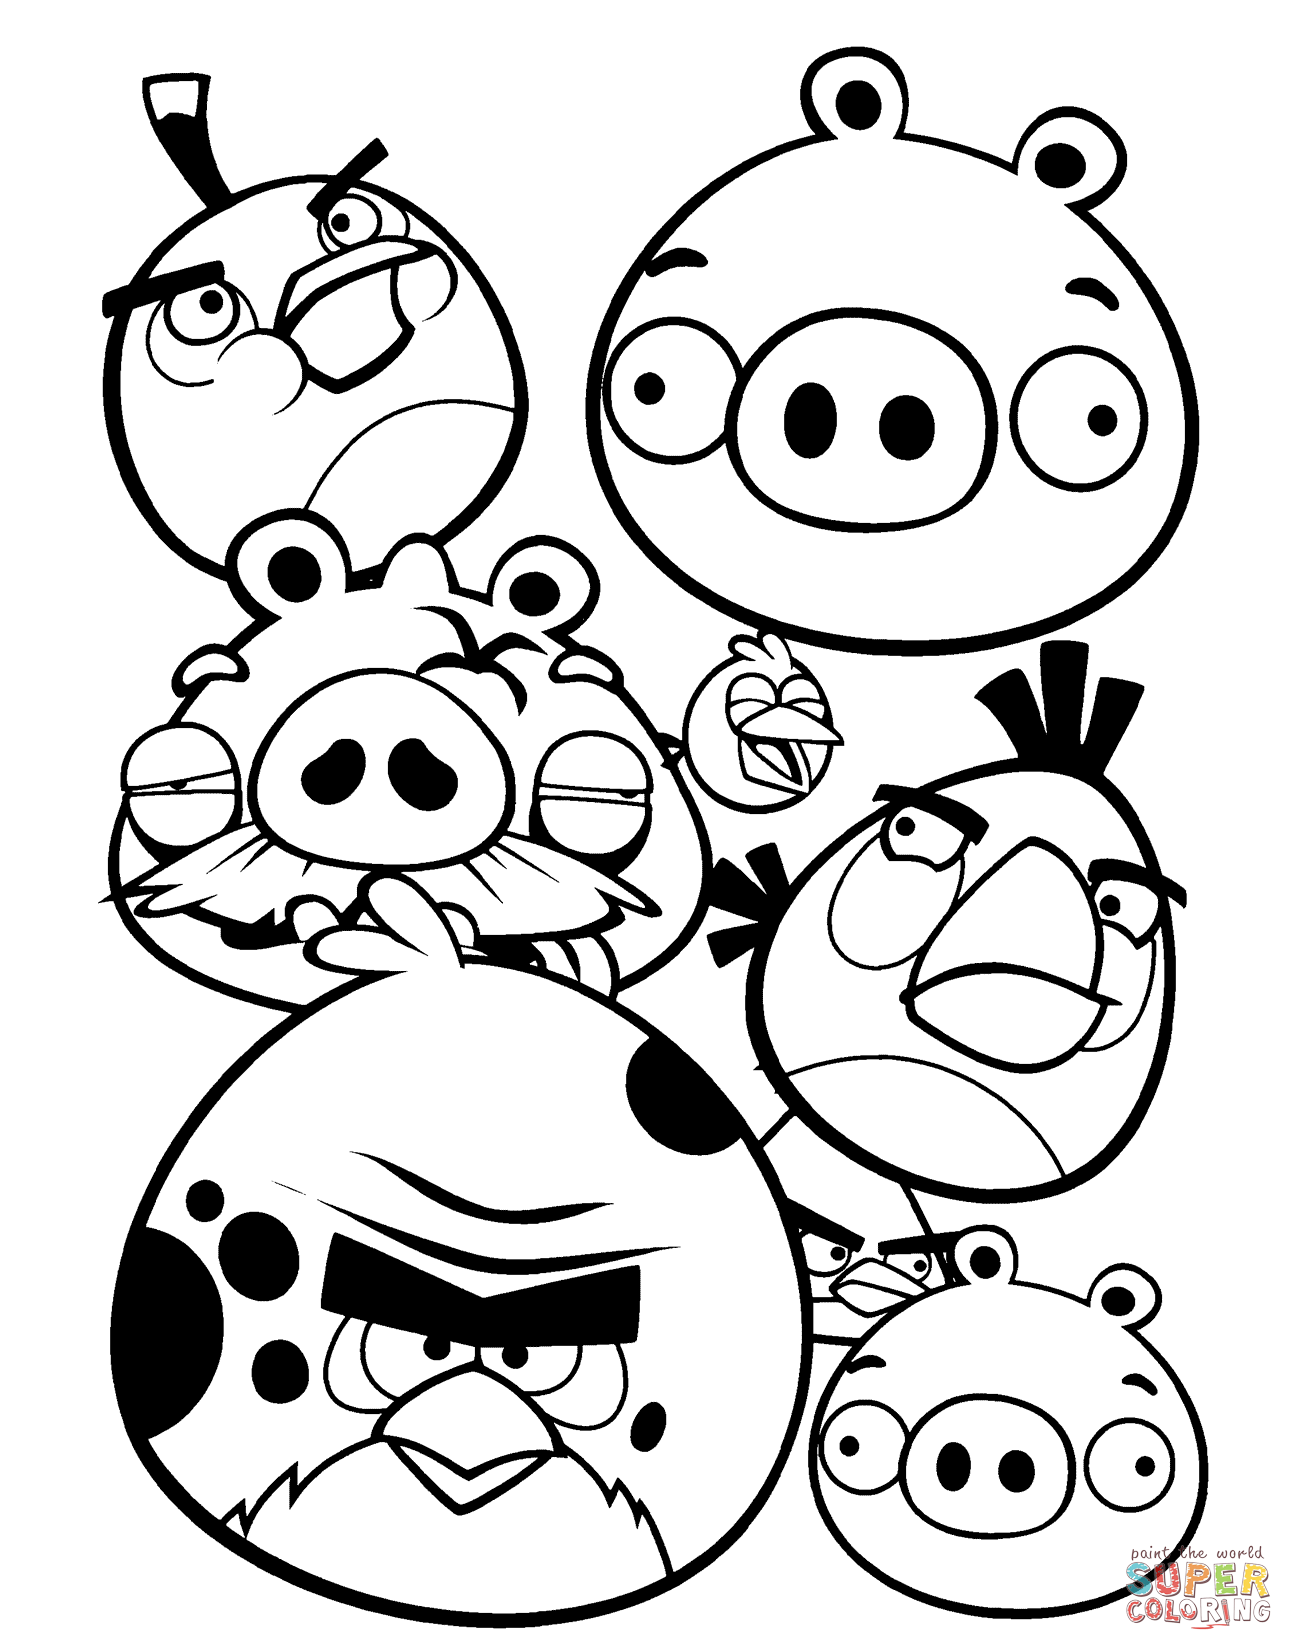 angry birds pictures to color and print angry birds stella coloring pages coloring home to and birds angry print color pictures